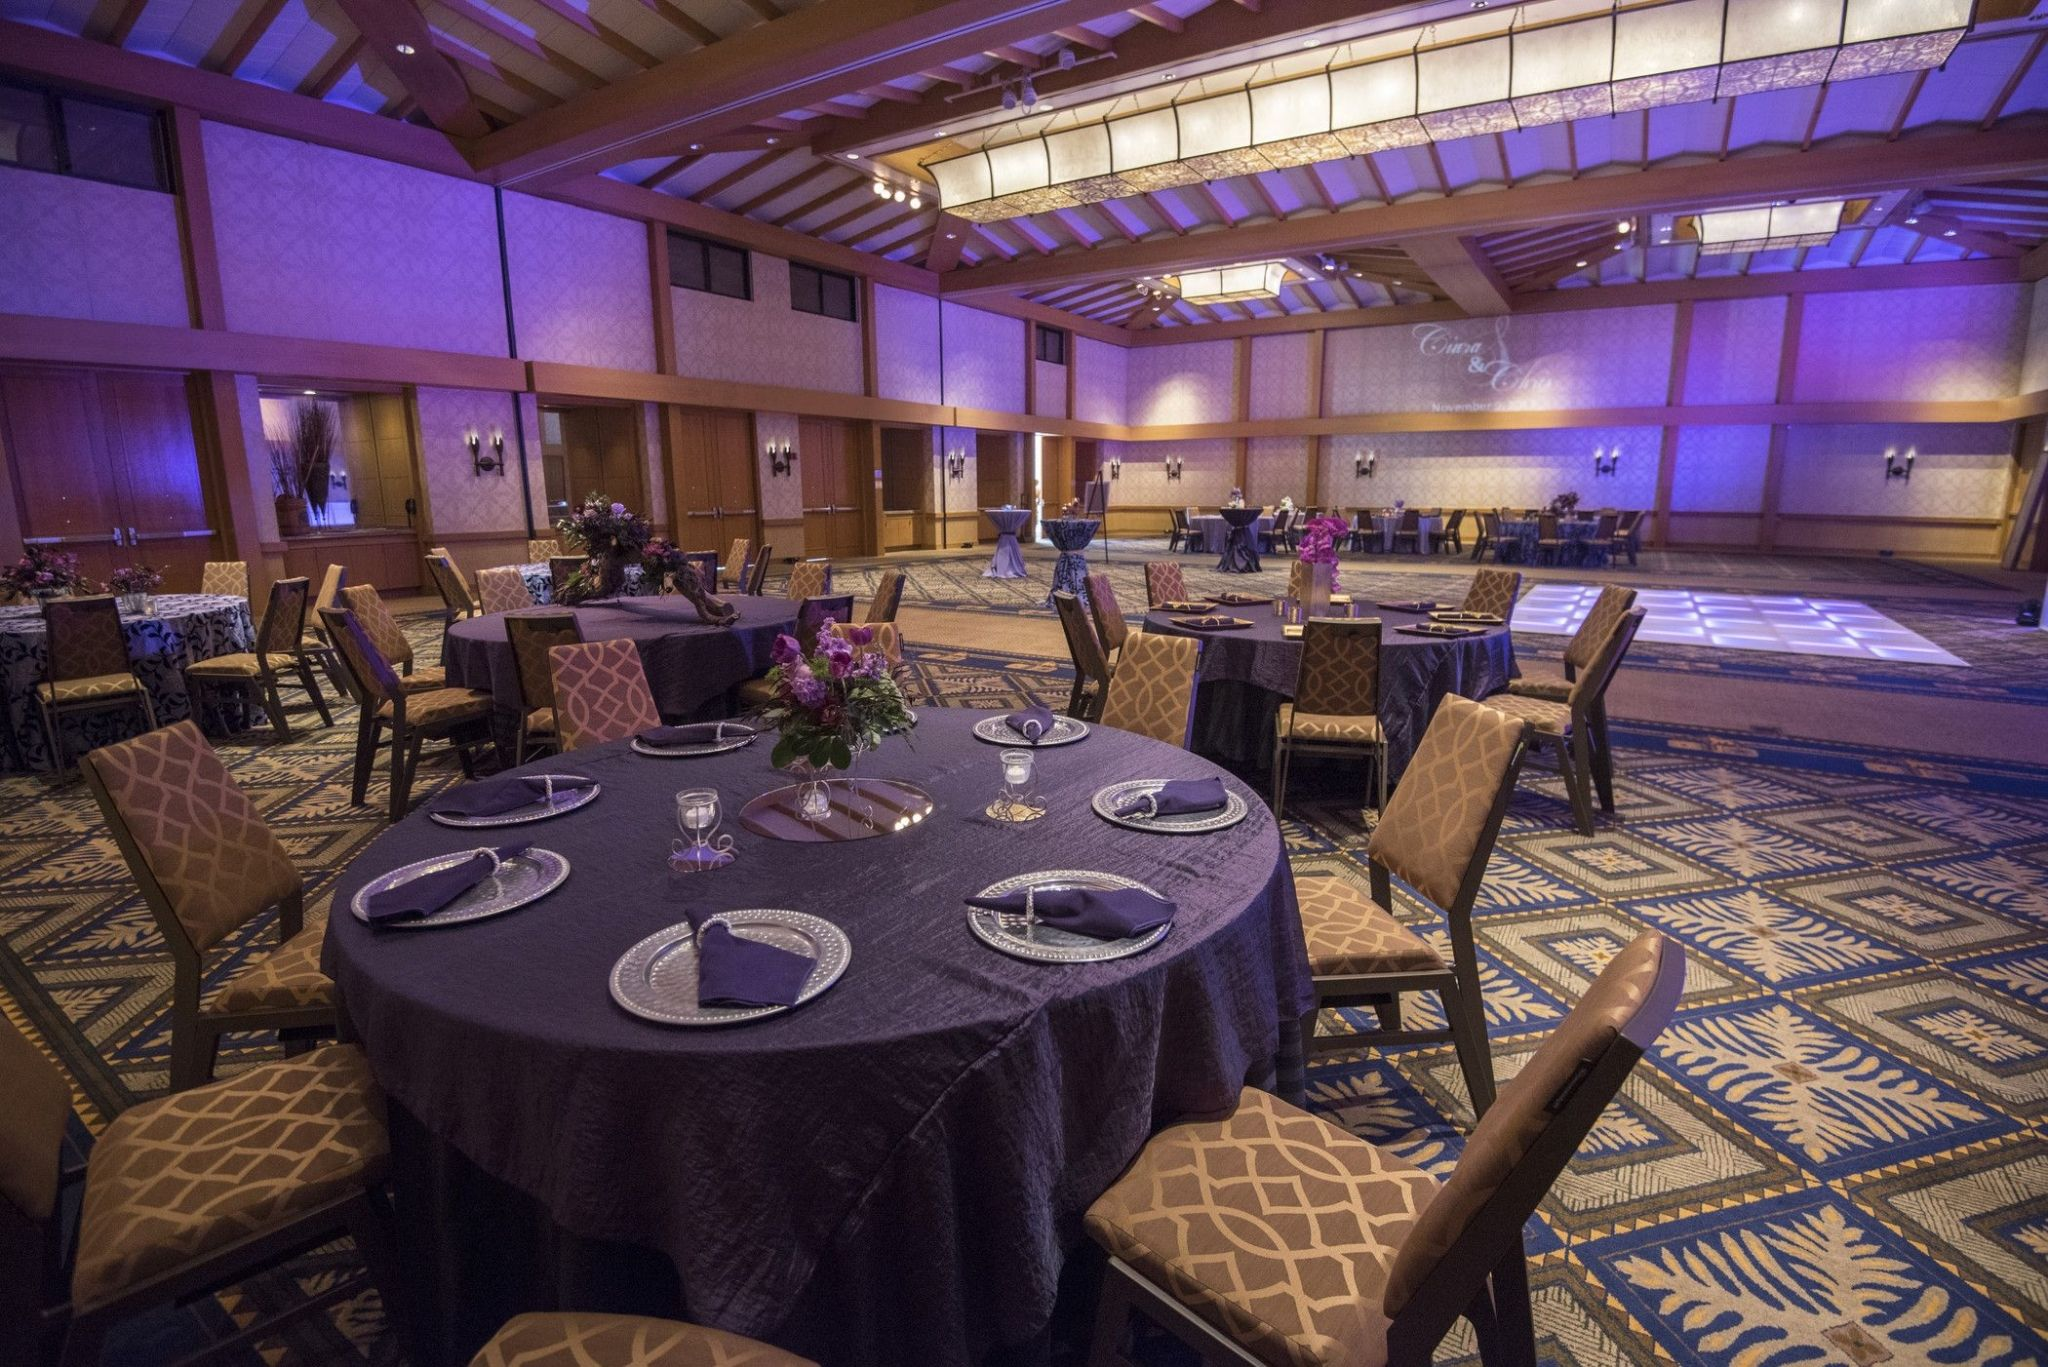 Sheraton Maui Resort & Spa - Maui Ballroom Reception